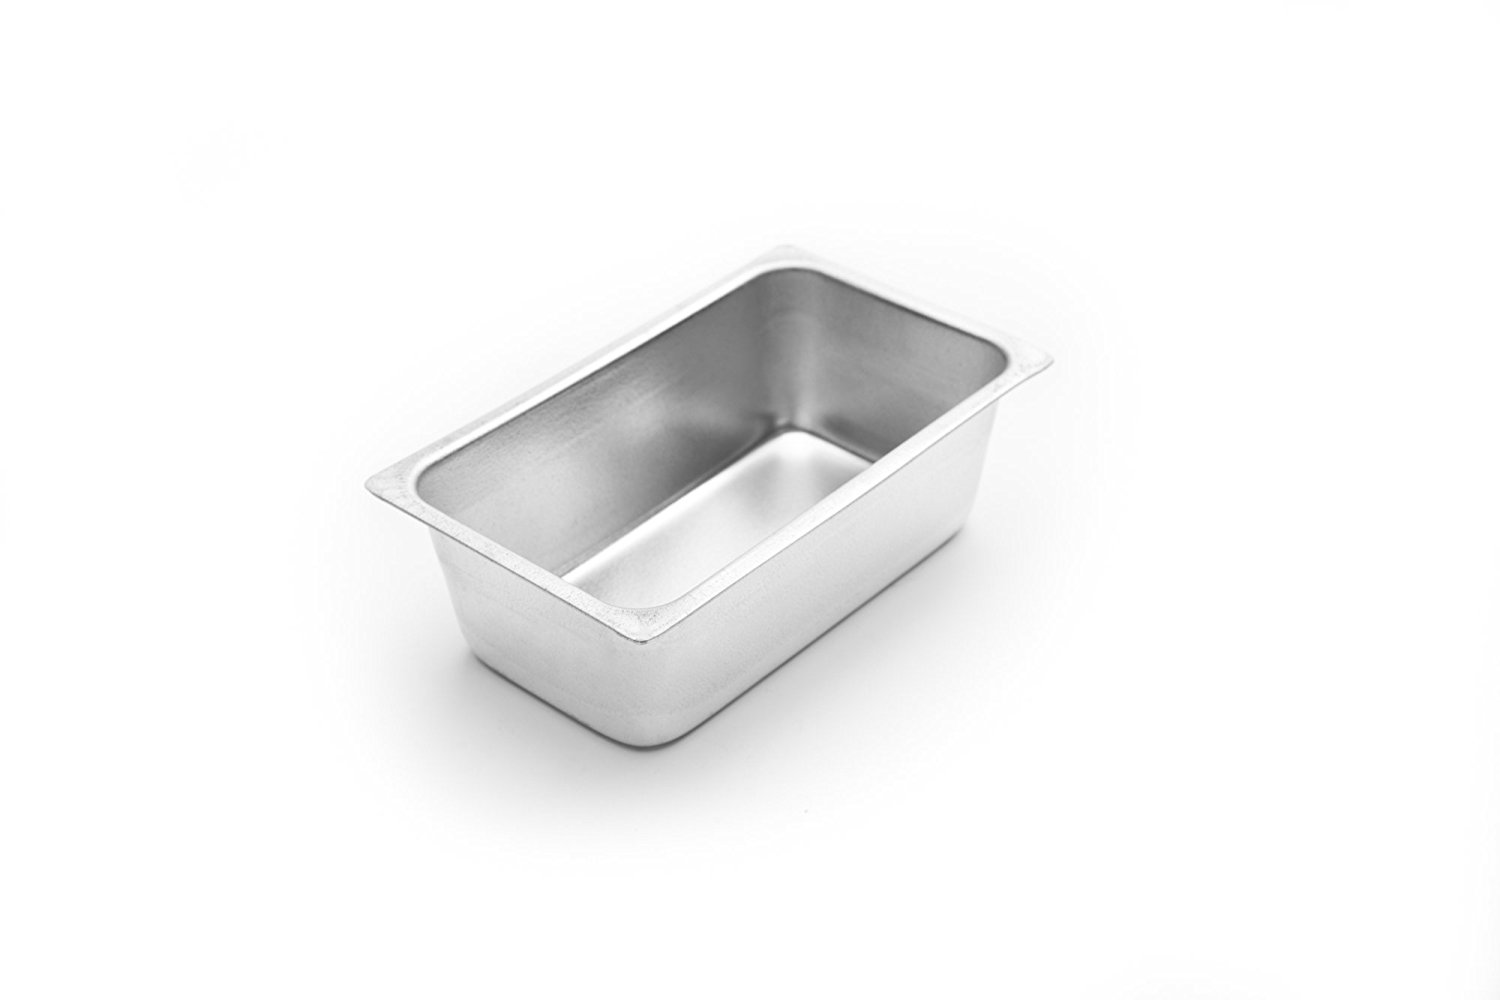 4672 Bread Pan, Tin-Plated Steel, 9.25-Inch, 5.75 x 11.25 x 2.5 inch By Fox Run by